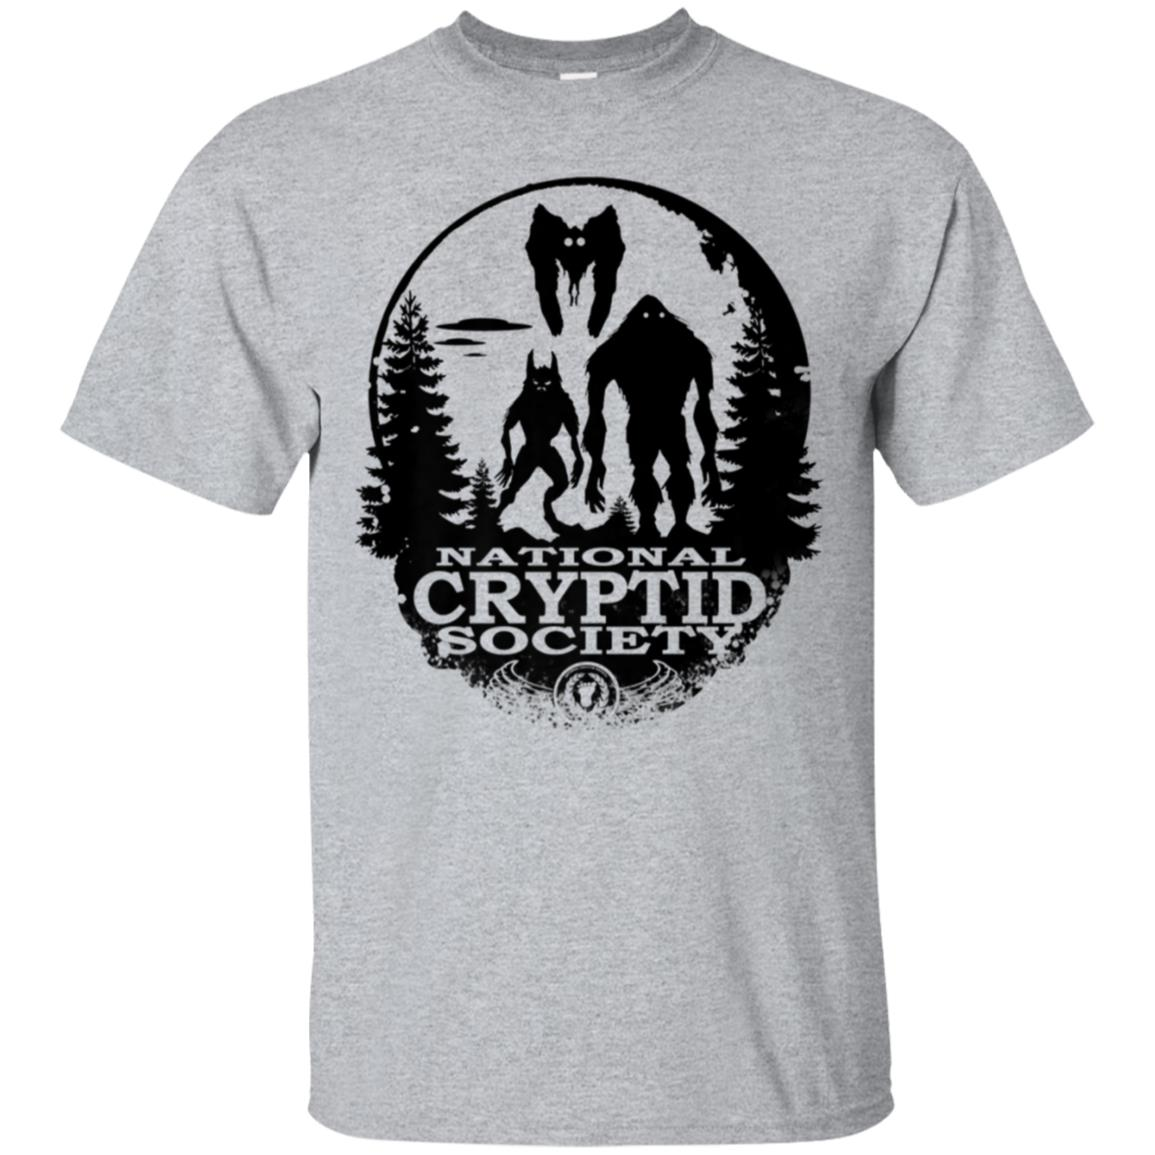 Bigfoot Dogman Mothman UFO; National Cryptid Society T-Shirt 99promocode